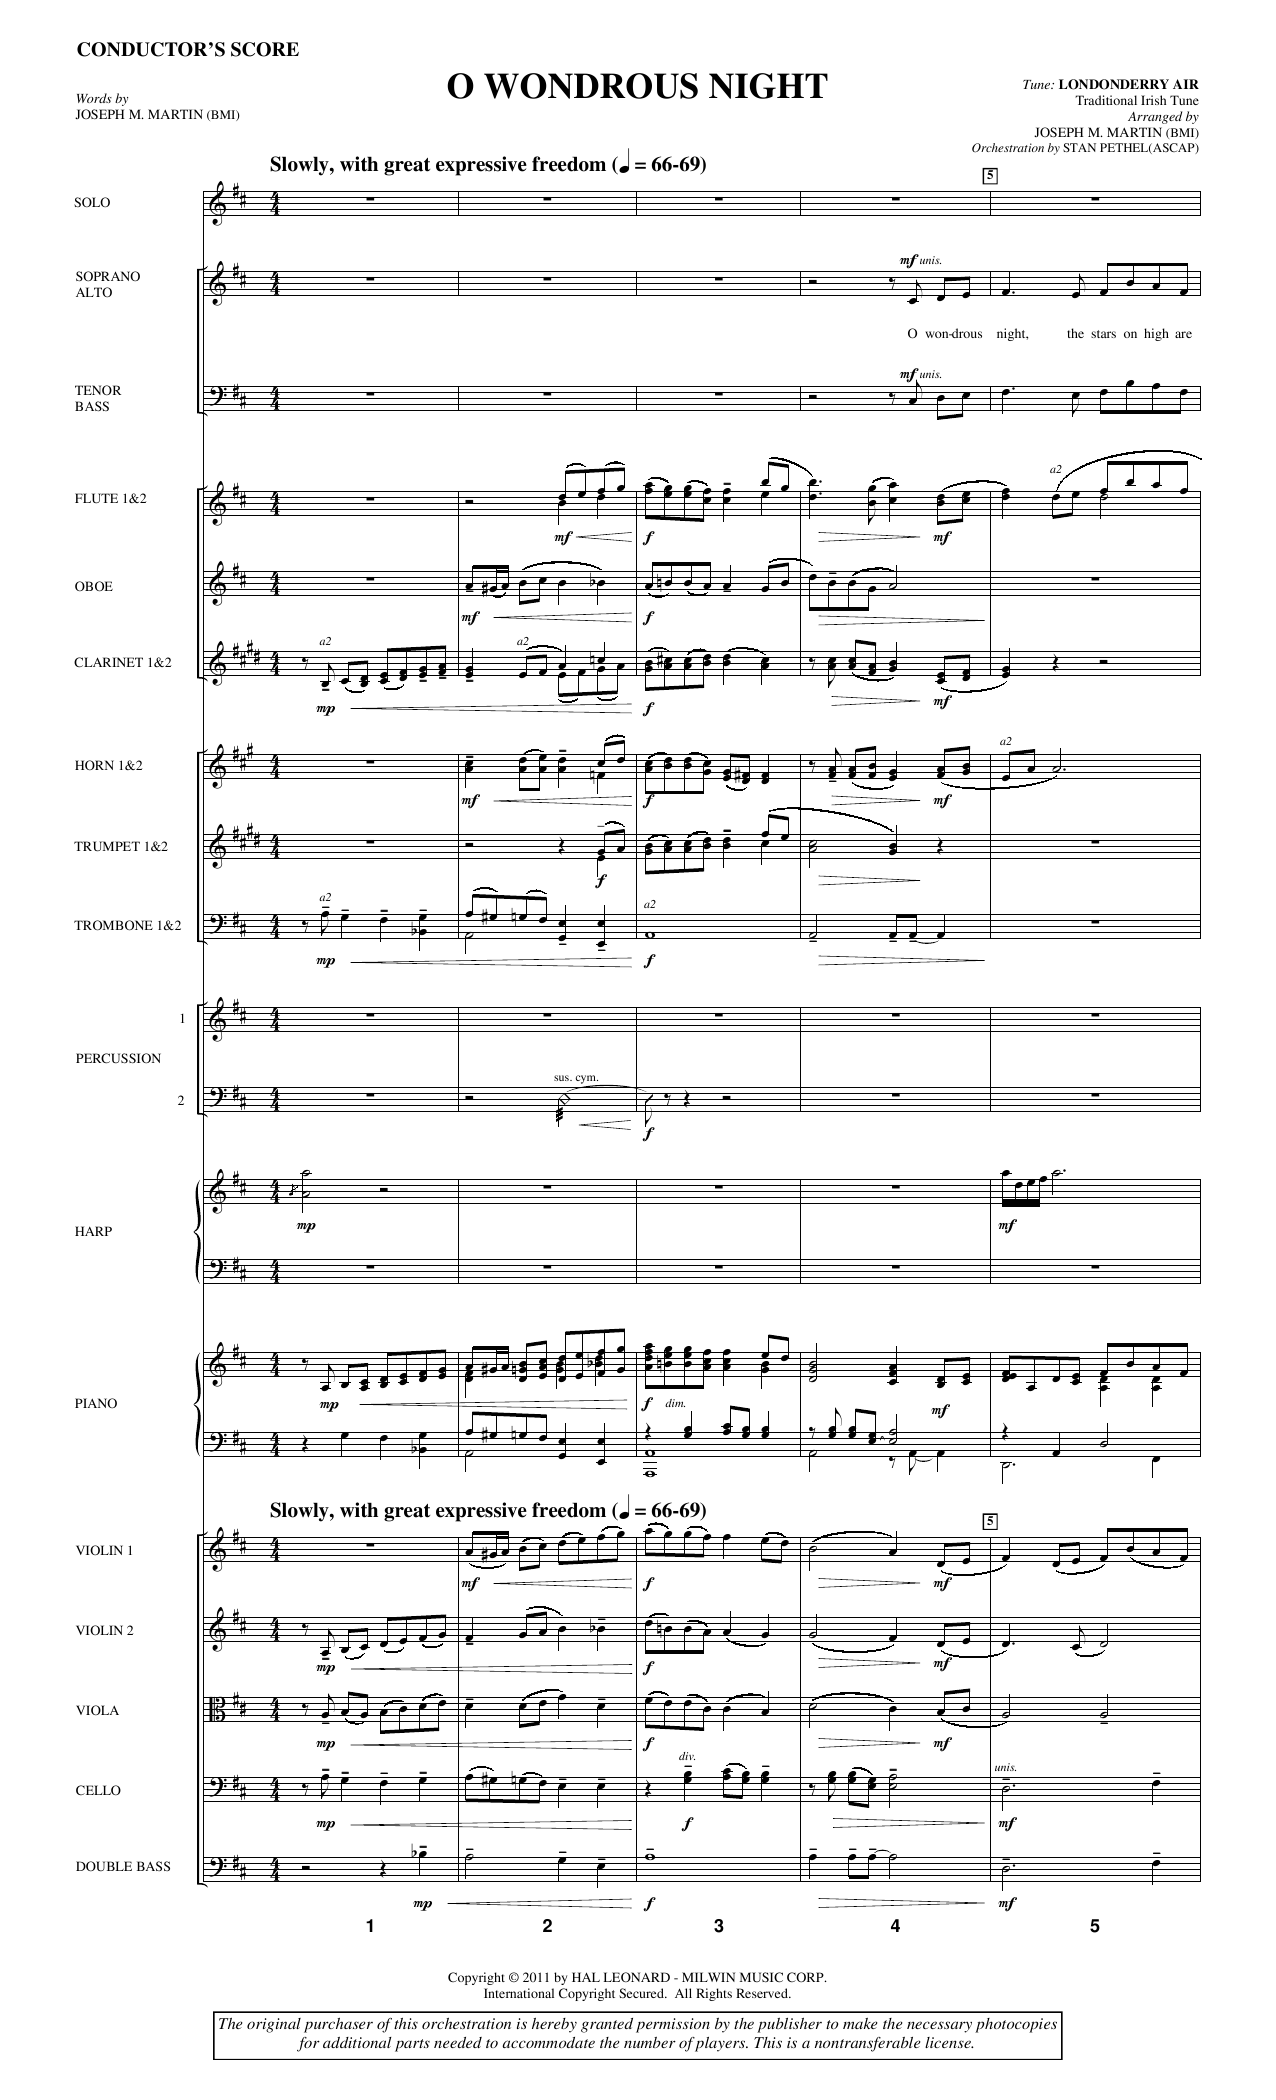 Joseph M. Martin O Wondrous Night - Full Score sheet music notes and chords. Download Printable PDF.